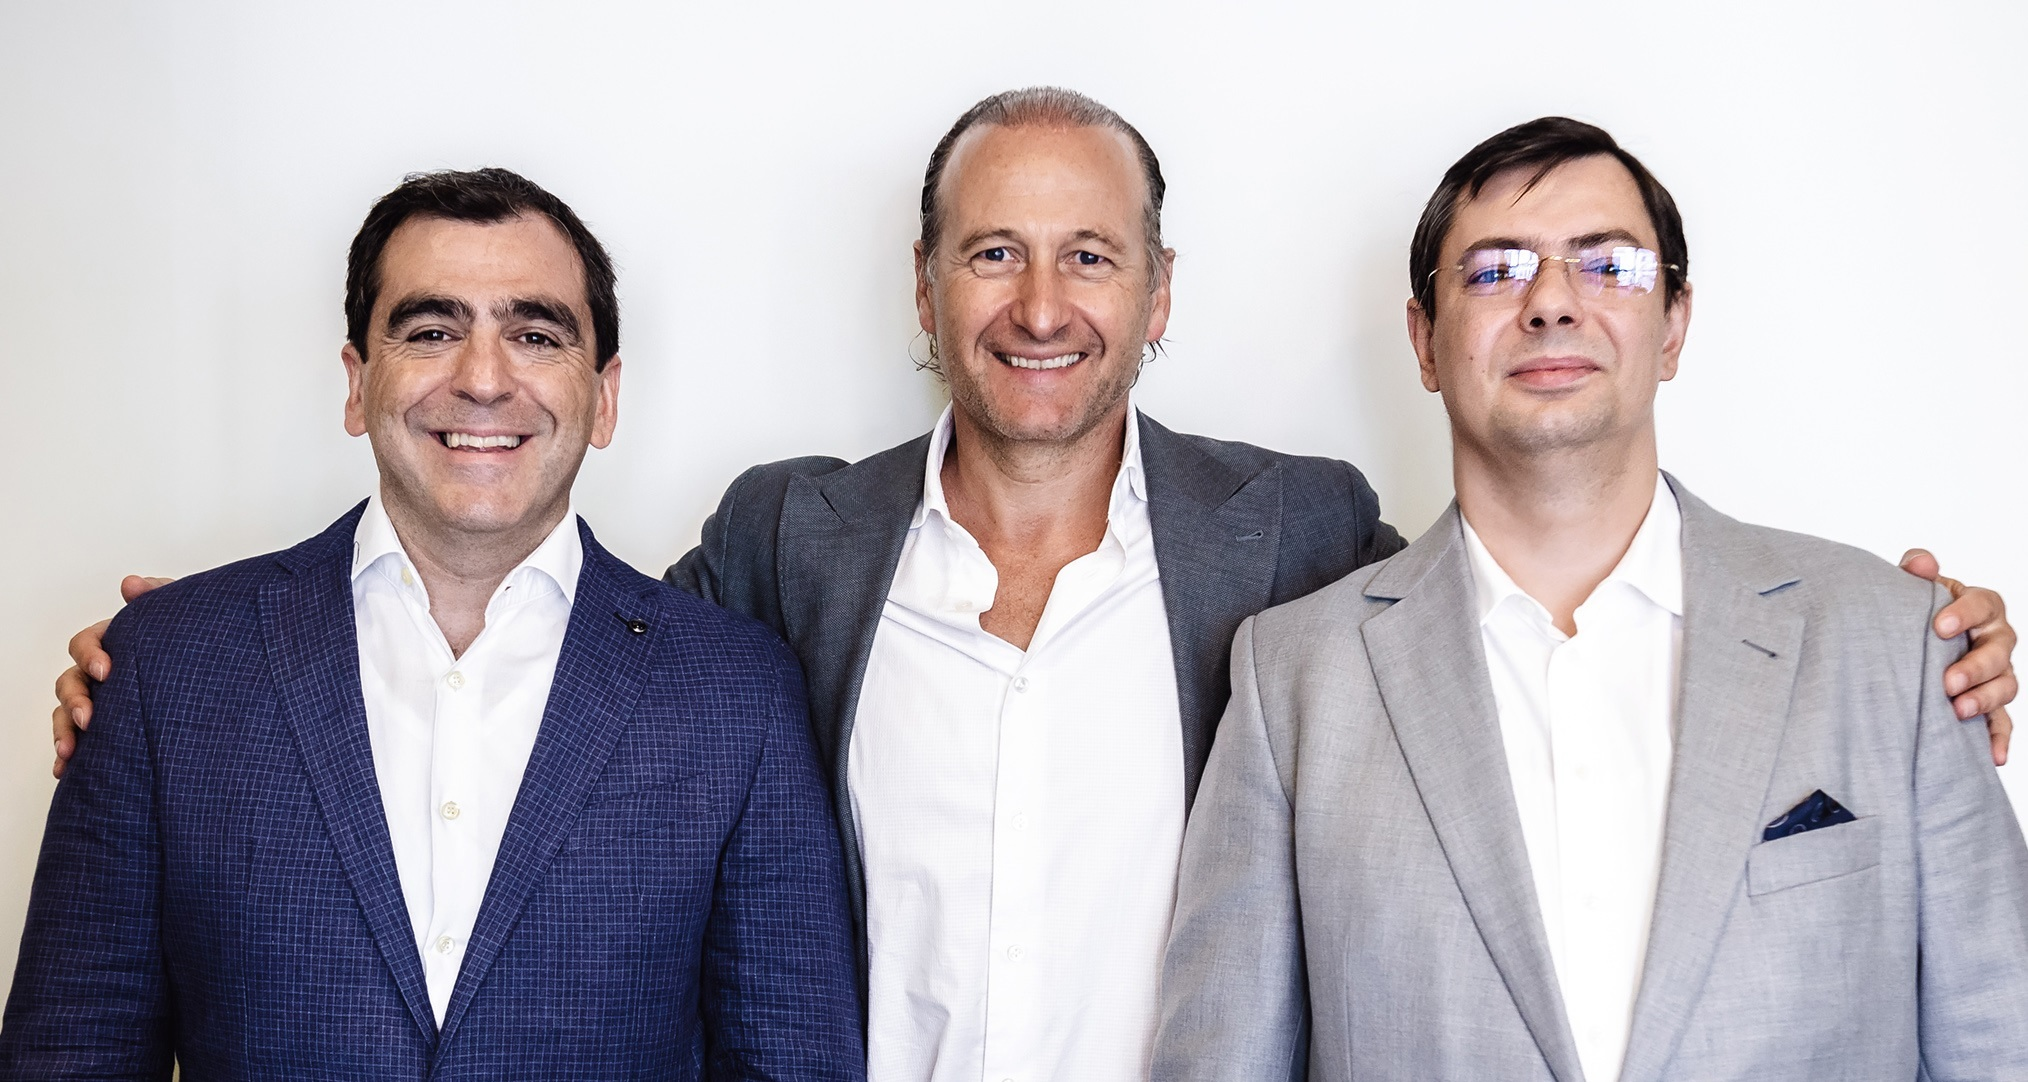 FIBARO to join forces with Nice group – home automation will